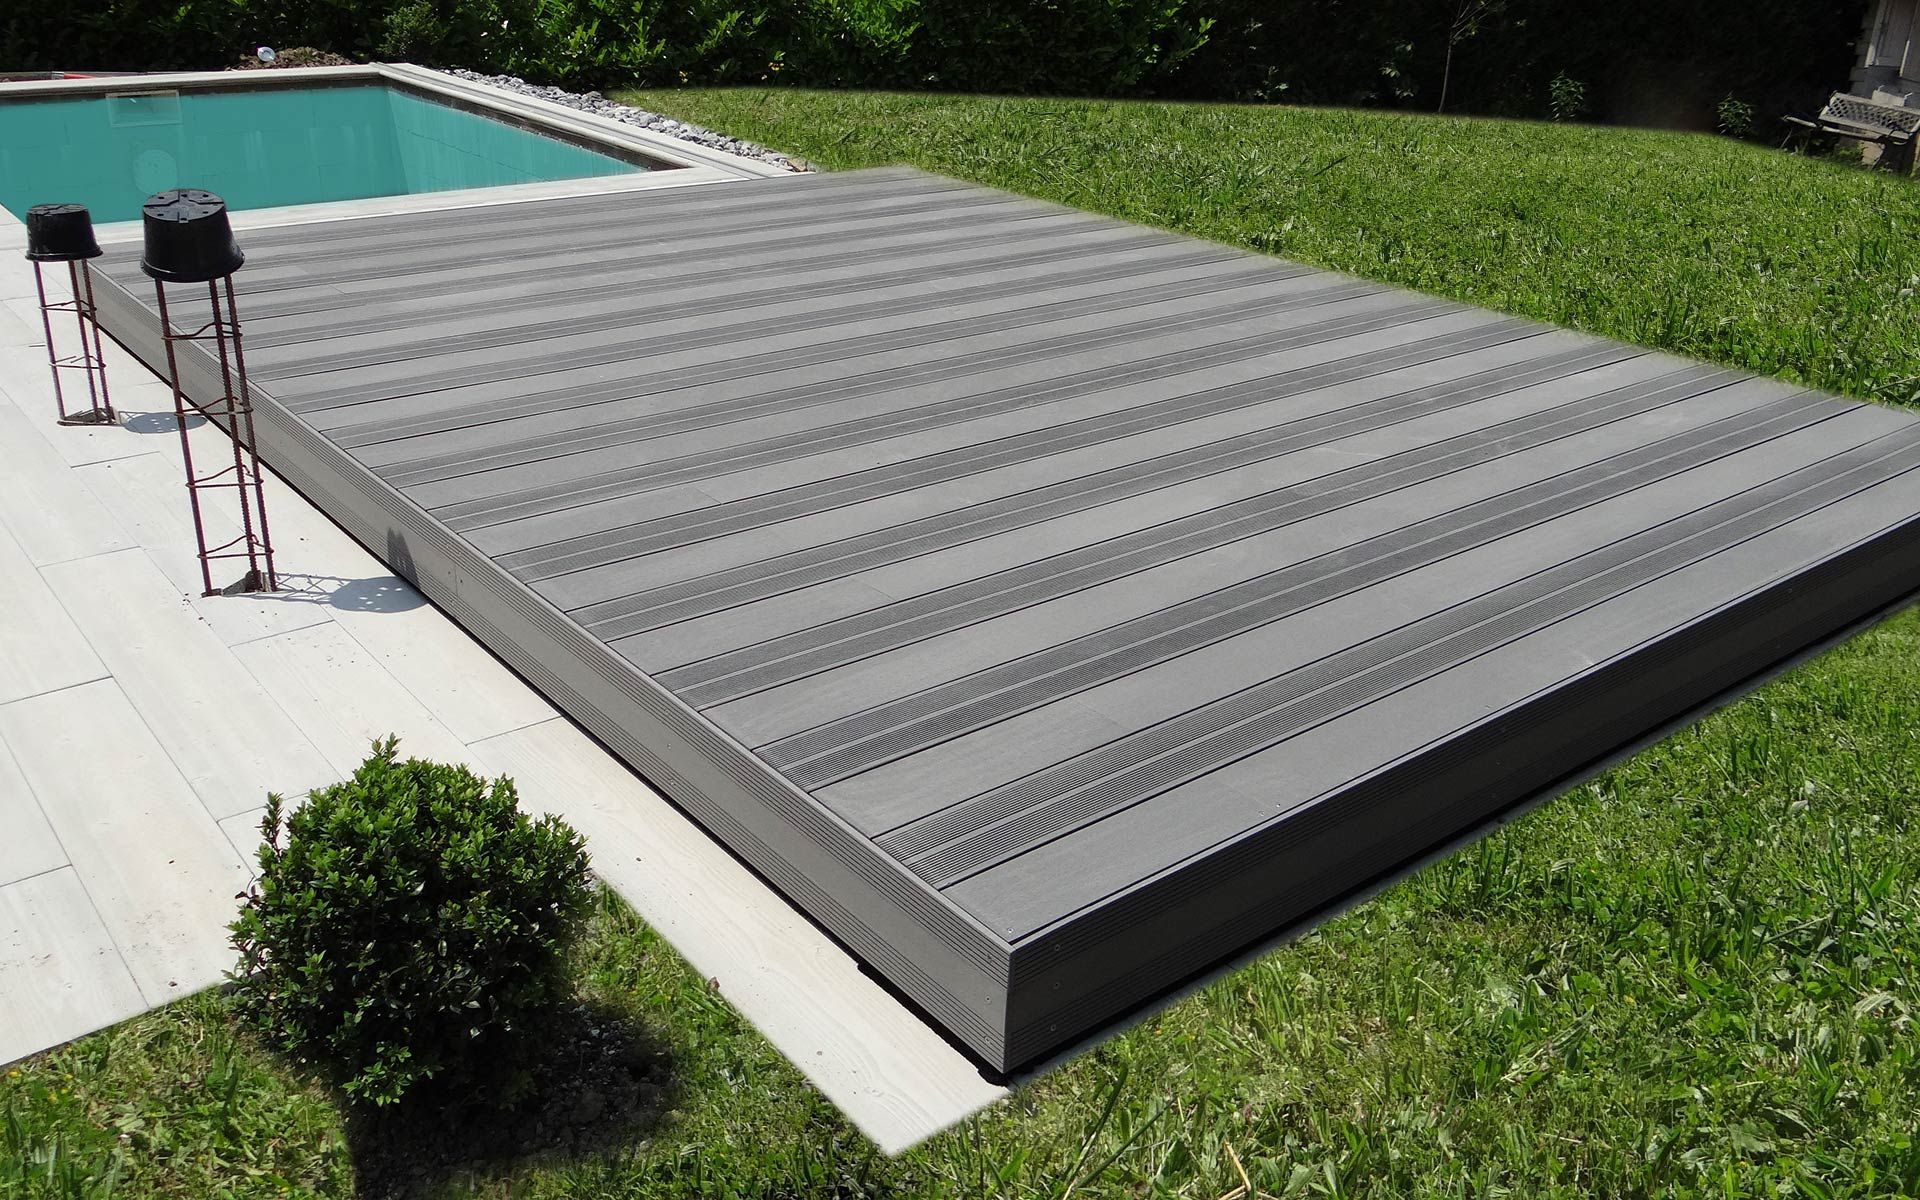 plancher coulissant terrasse mobile piscine Plancher